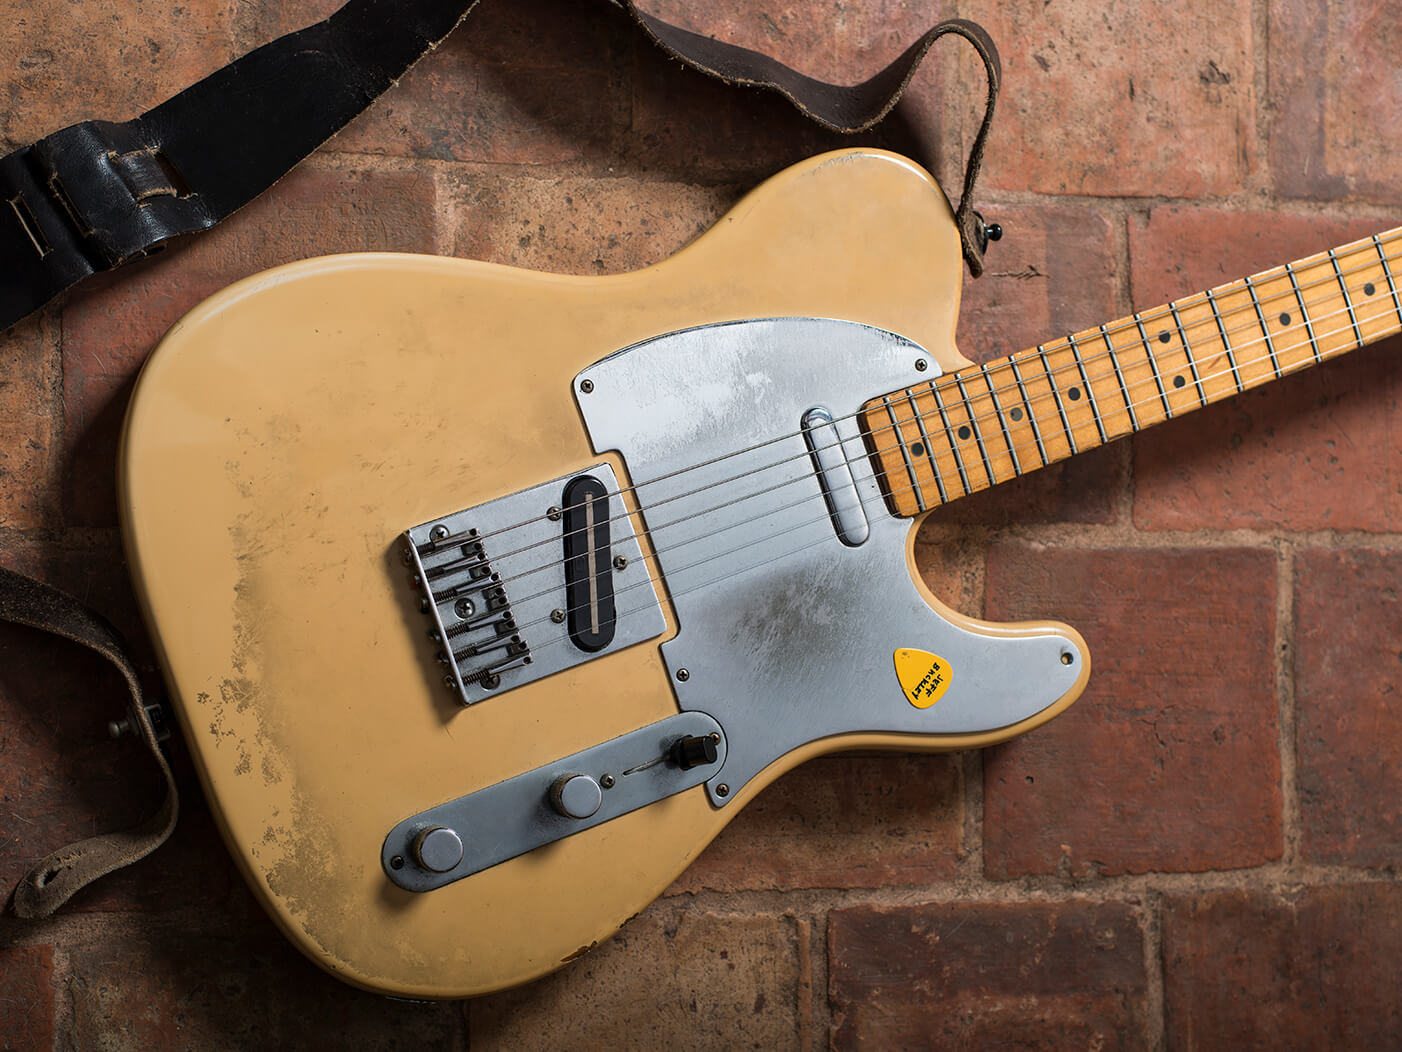 Jeff Buckley 1983 Telecaster Fender